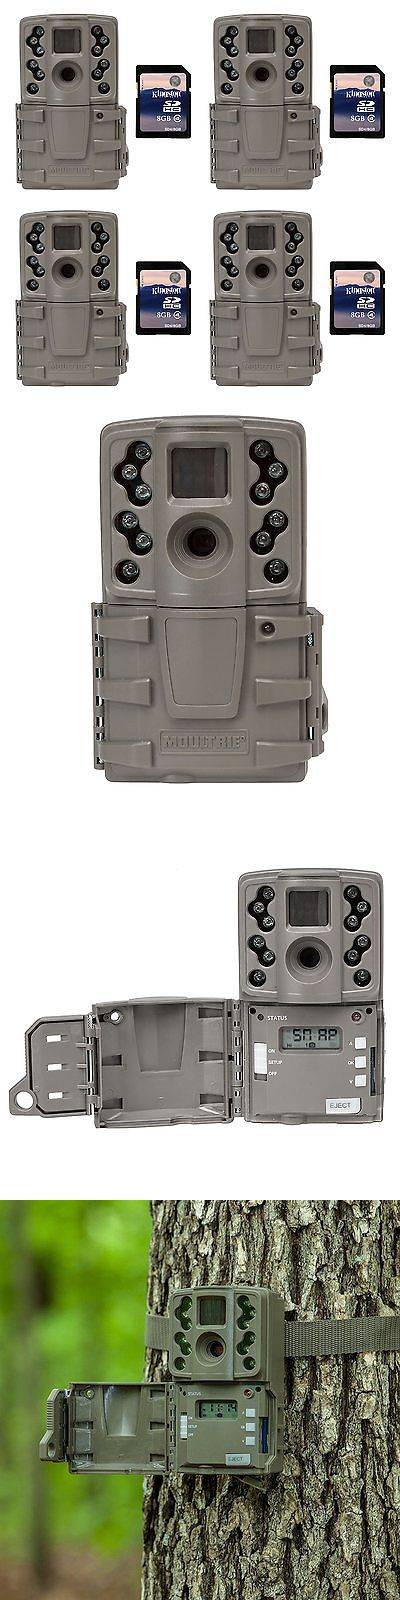 Game and Trail Cameras 52505: Moultrie A20 12Mp Infrared Mini Hunting Game Trail Camera, 4 Pack + 8Gb Sd Cards -> BUY IT NOW ONLY: $254.99 on eBay!